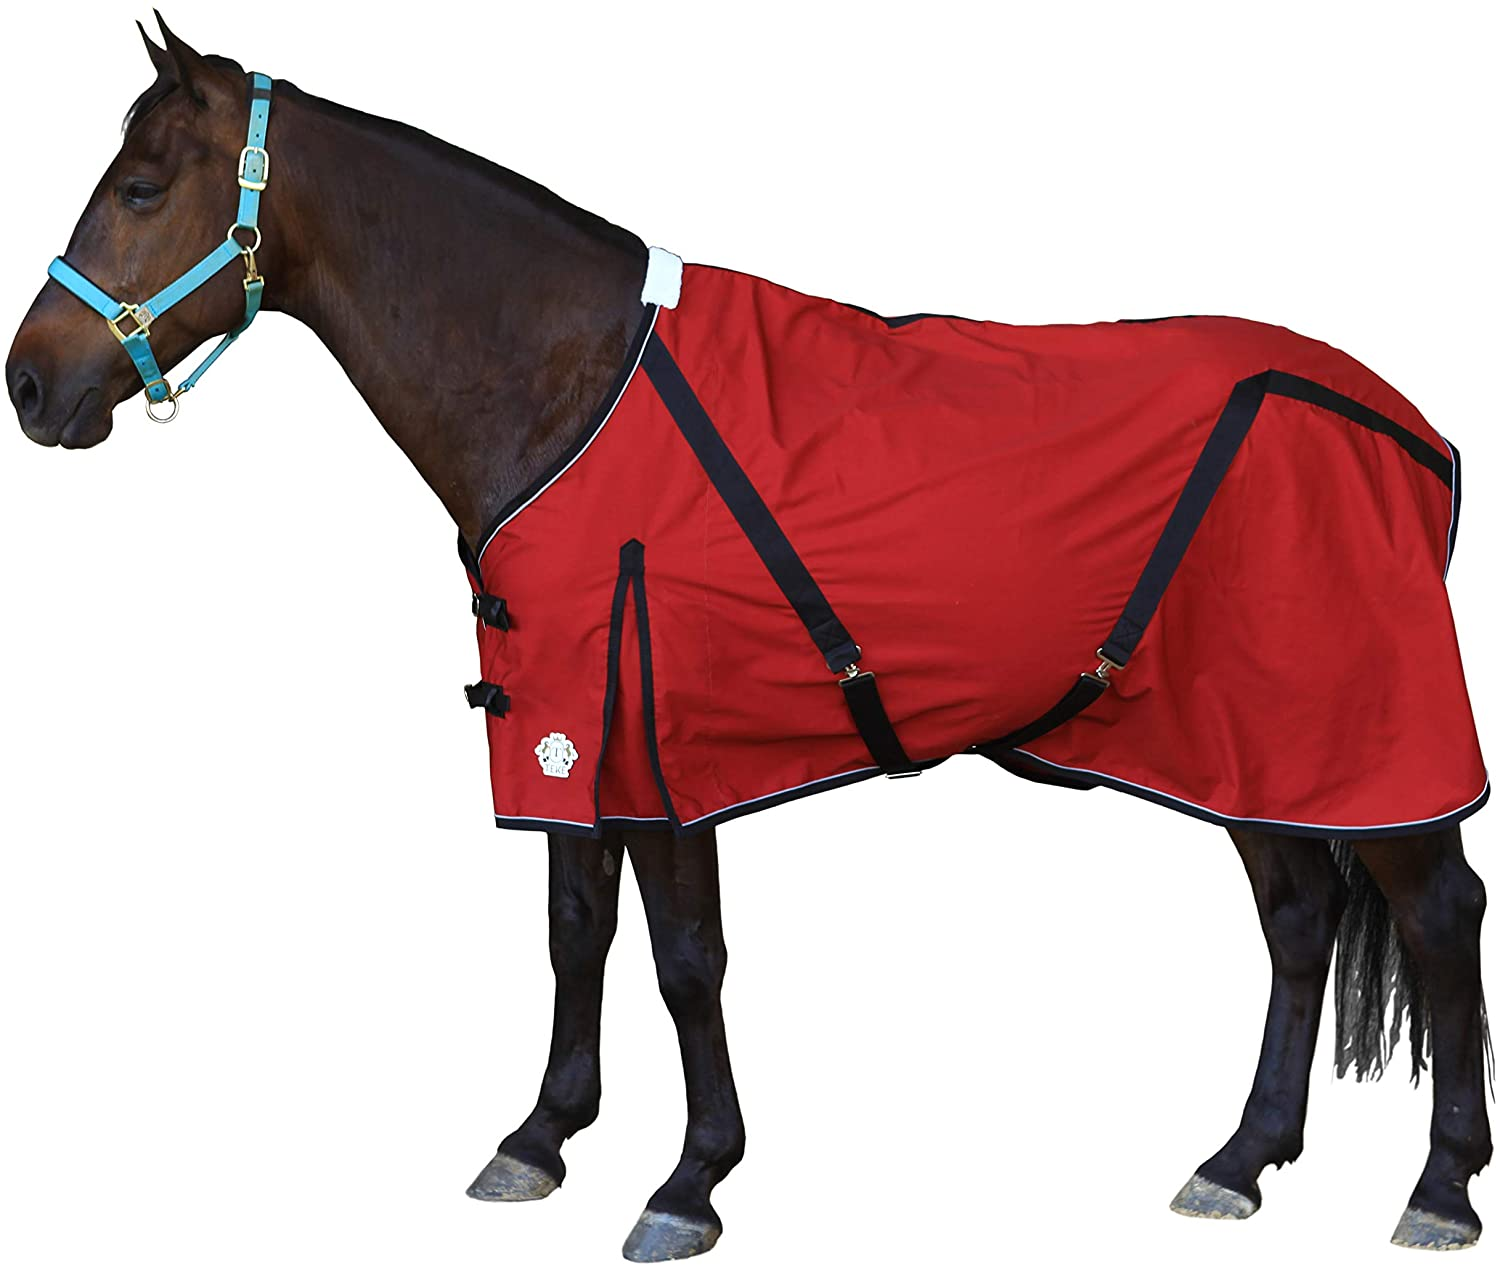 TEKE Deluxe Horse Canvas Sheet for Snug and Clean in Stable